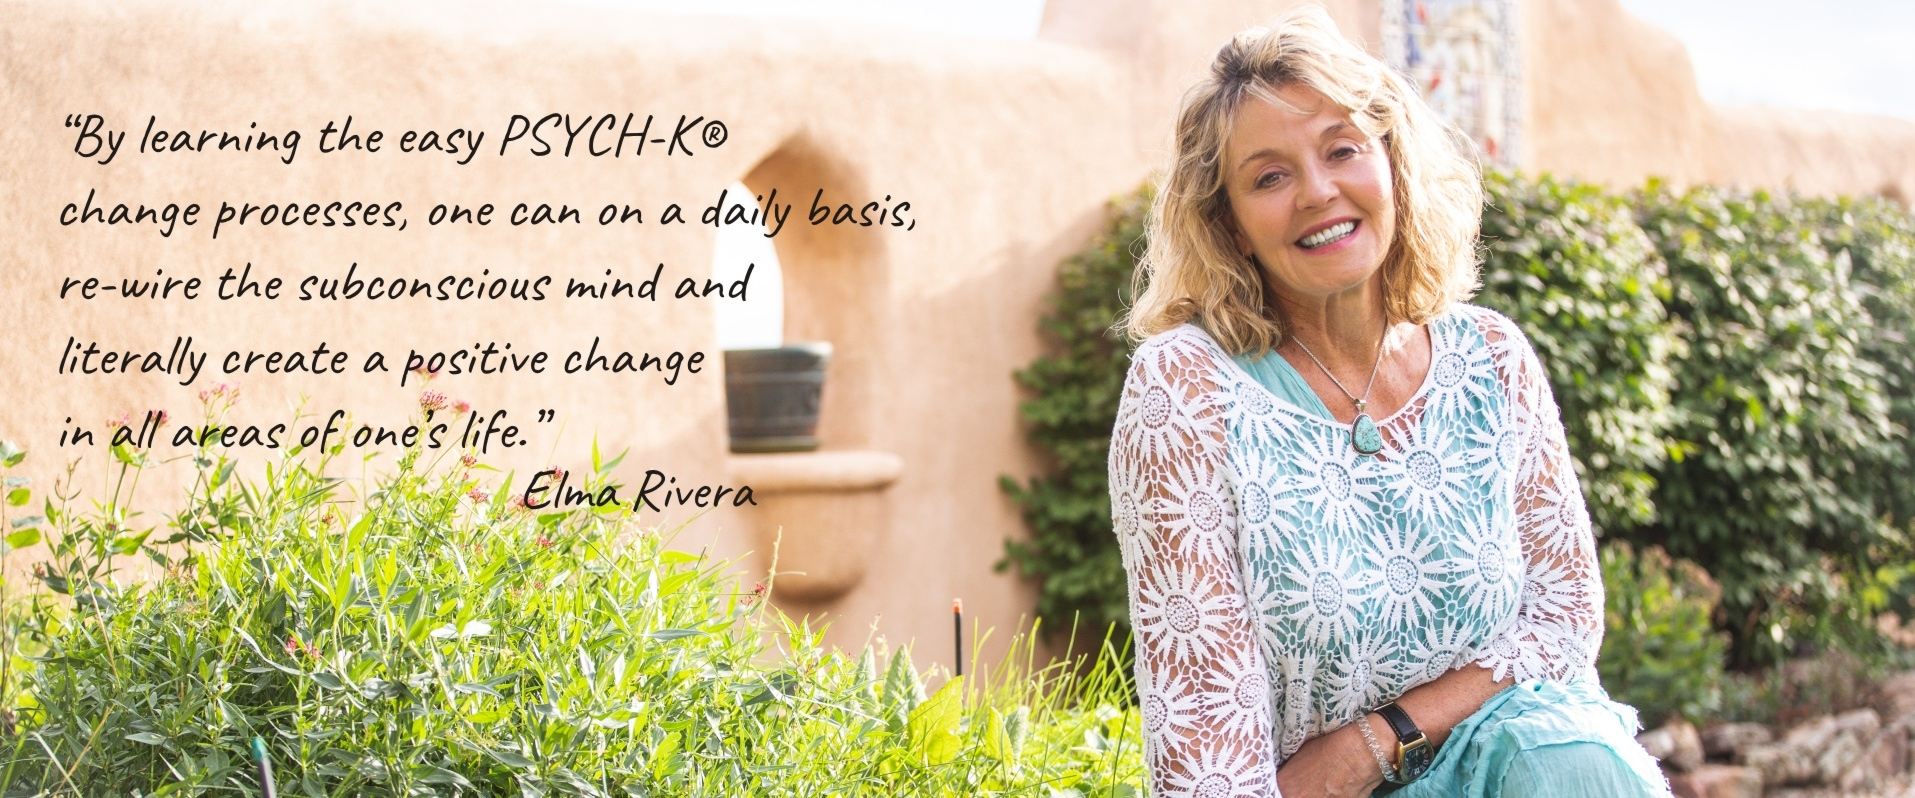 With the PSYCH-K change process you learn to re-wire the subconscious mind and create positive change.